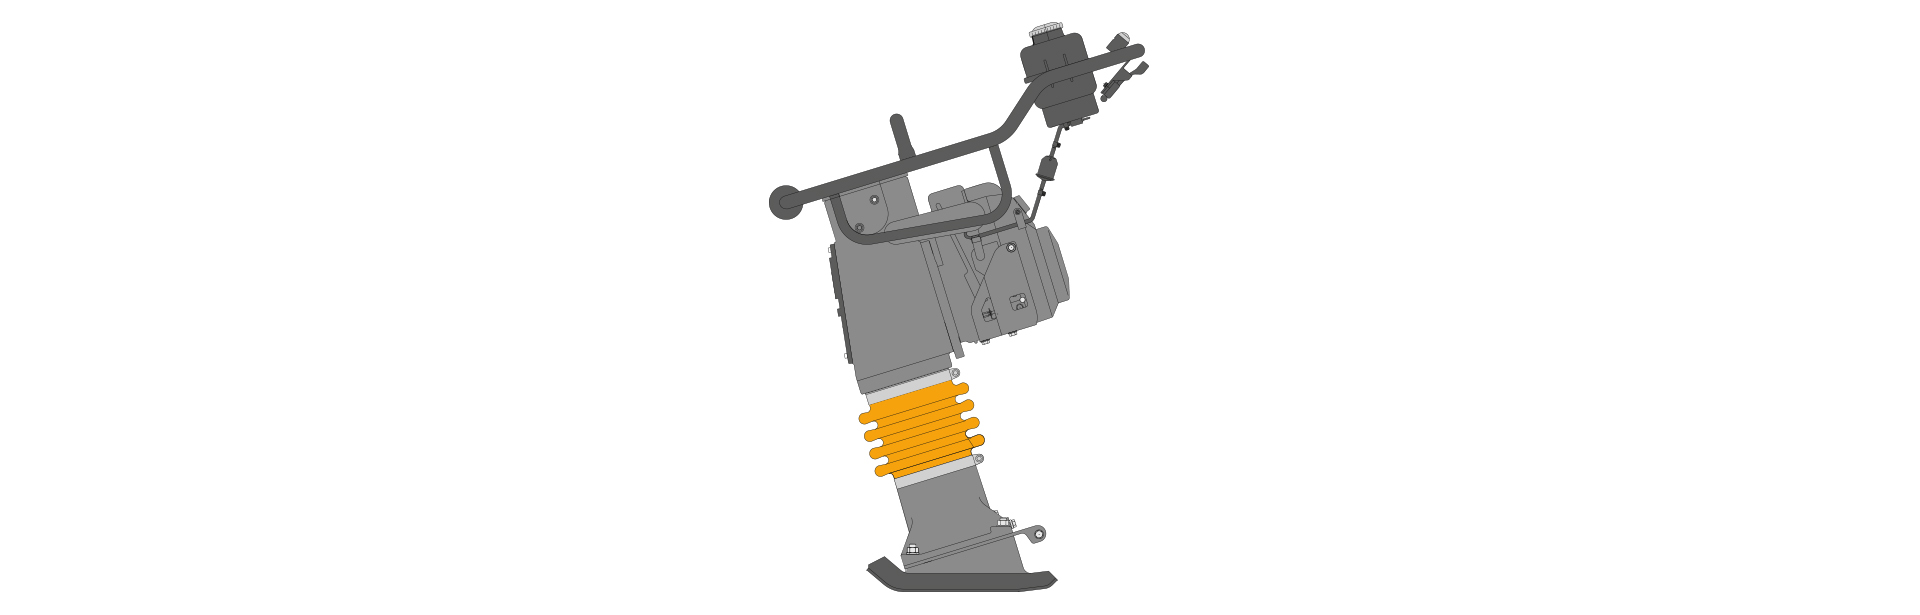 Image of a Vibratory Rammer